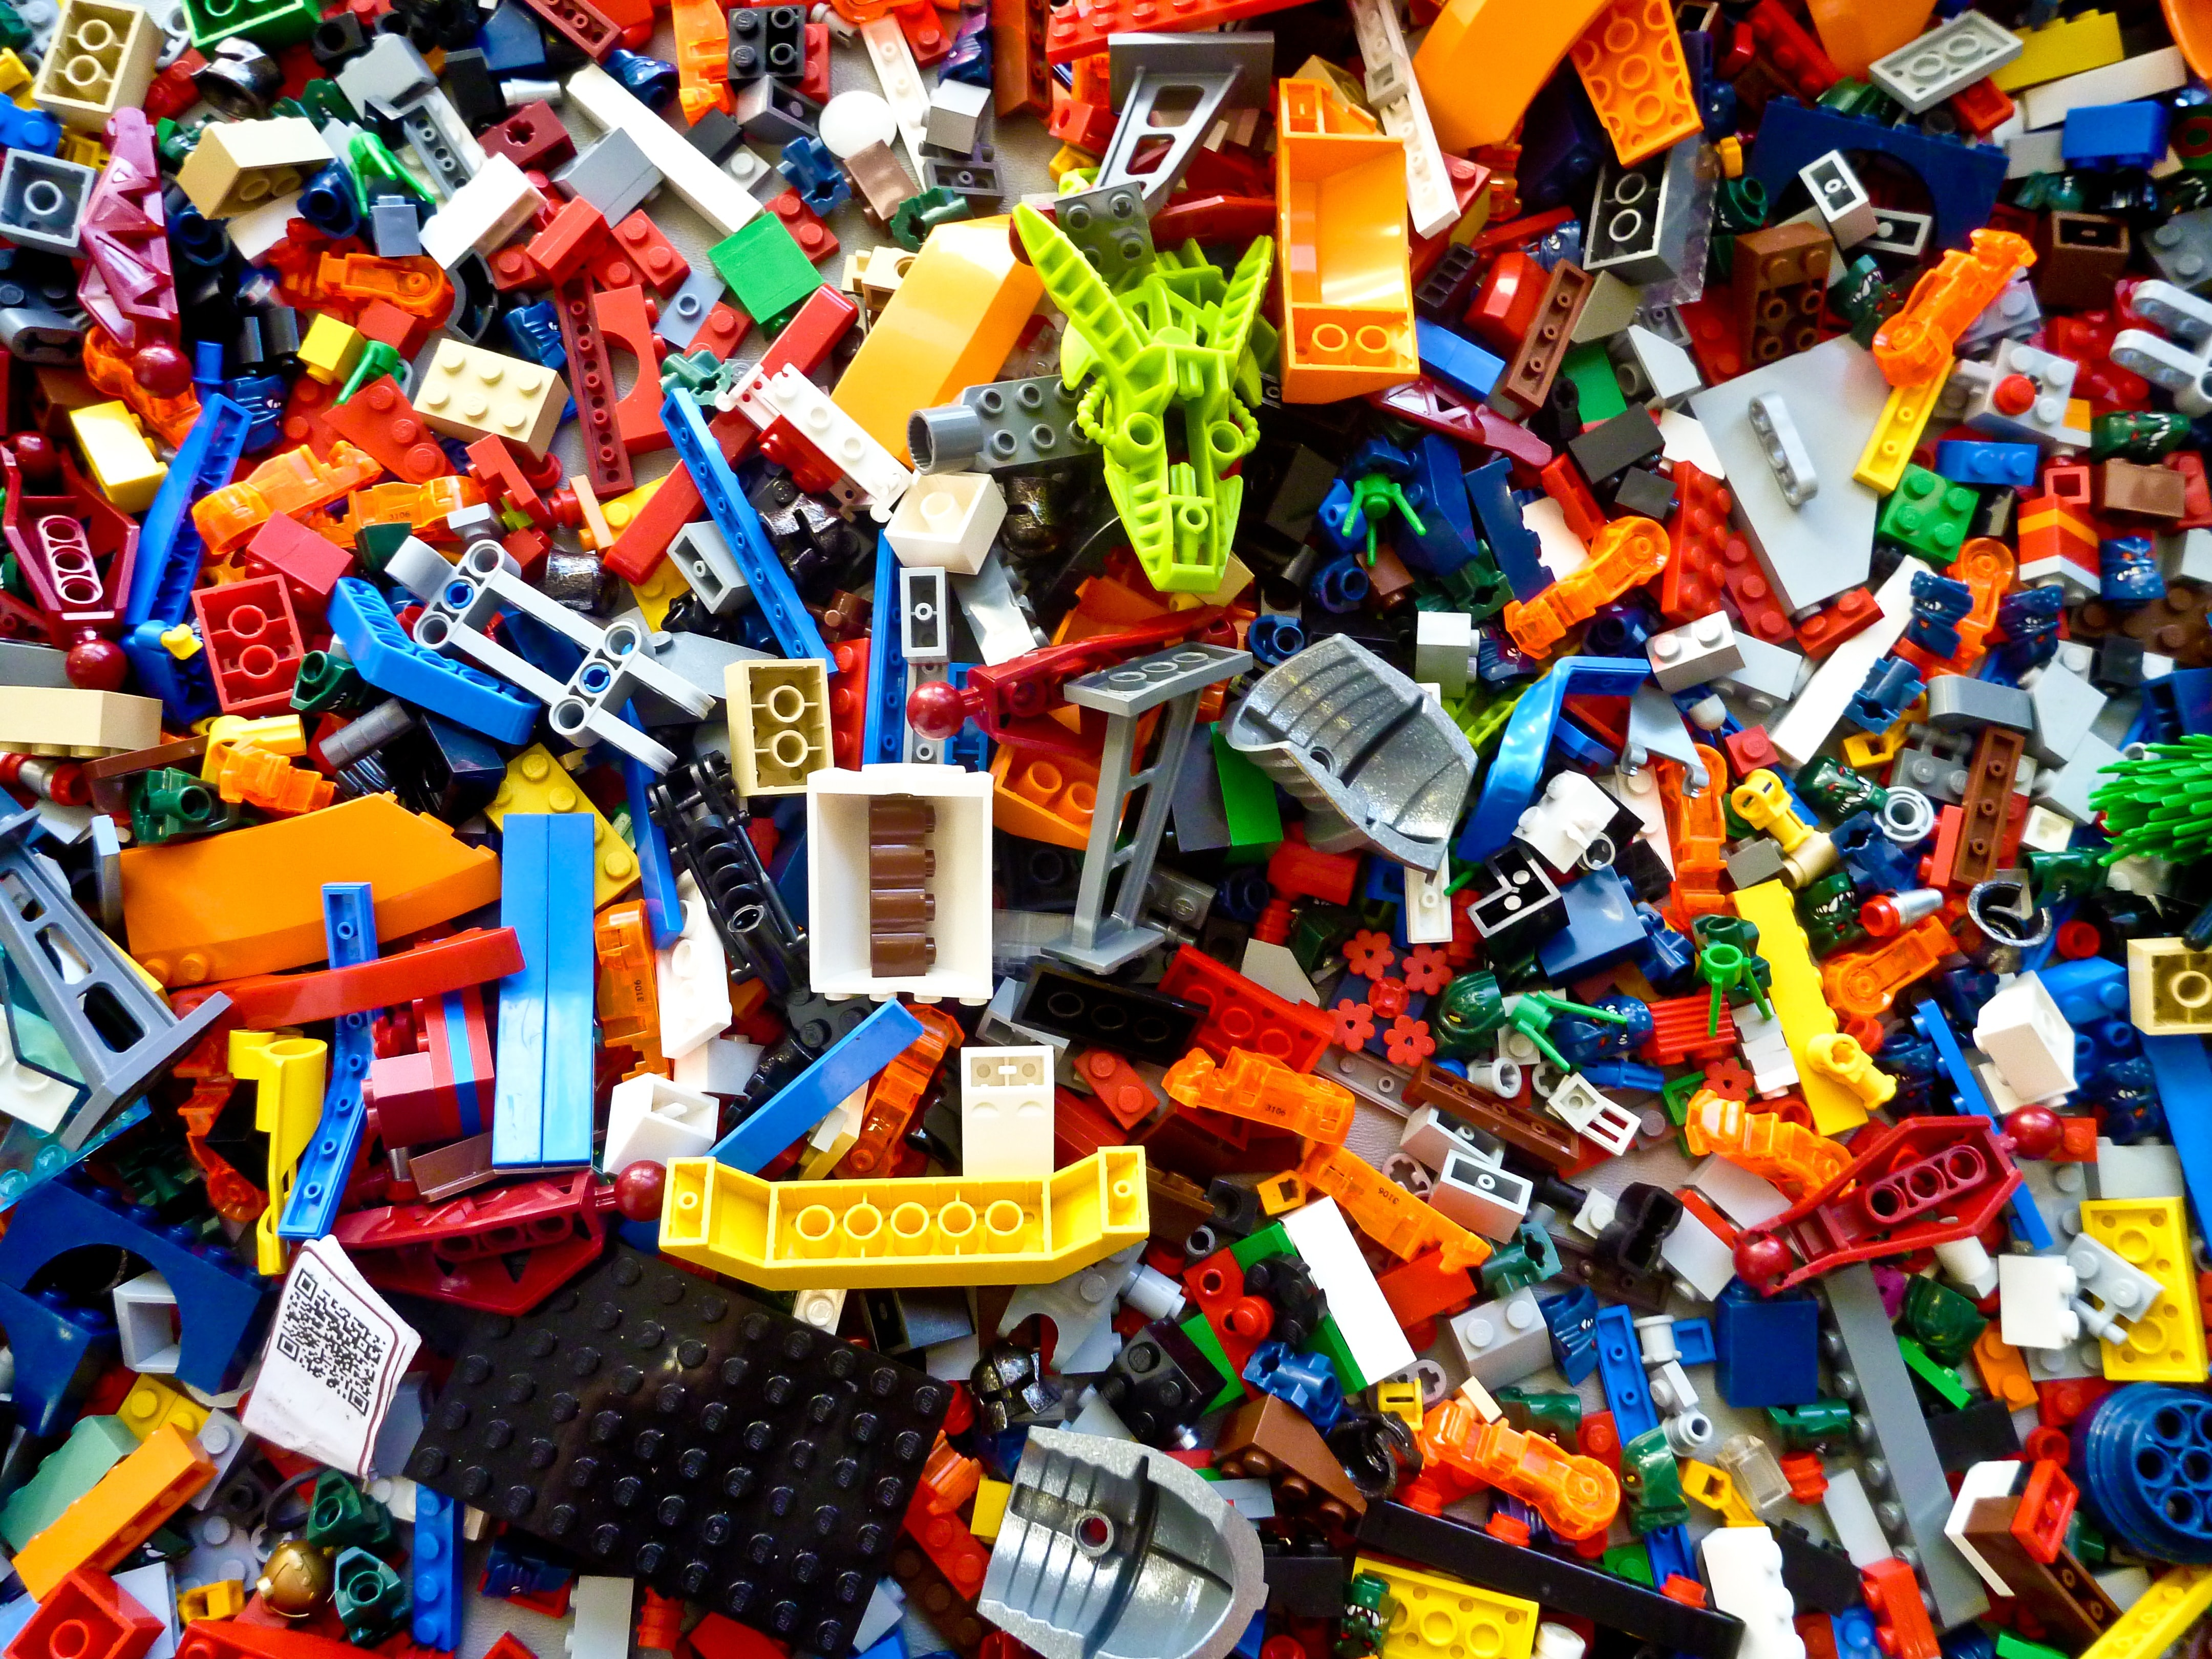 1,000 years from now, lego bricks could be found in the ocean